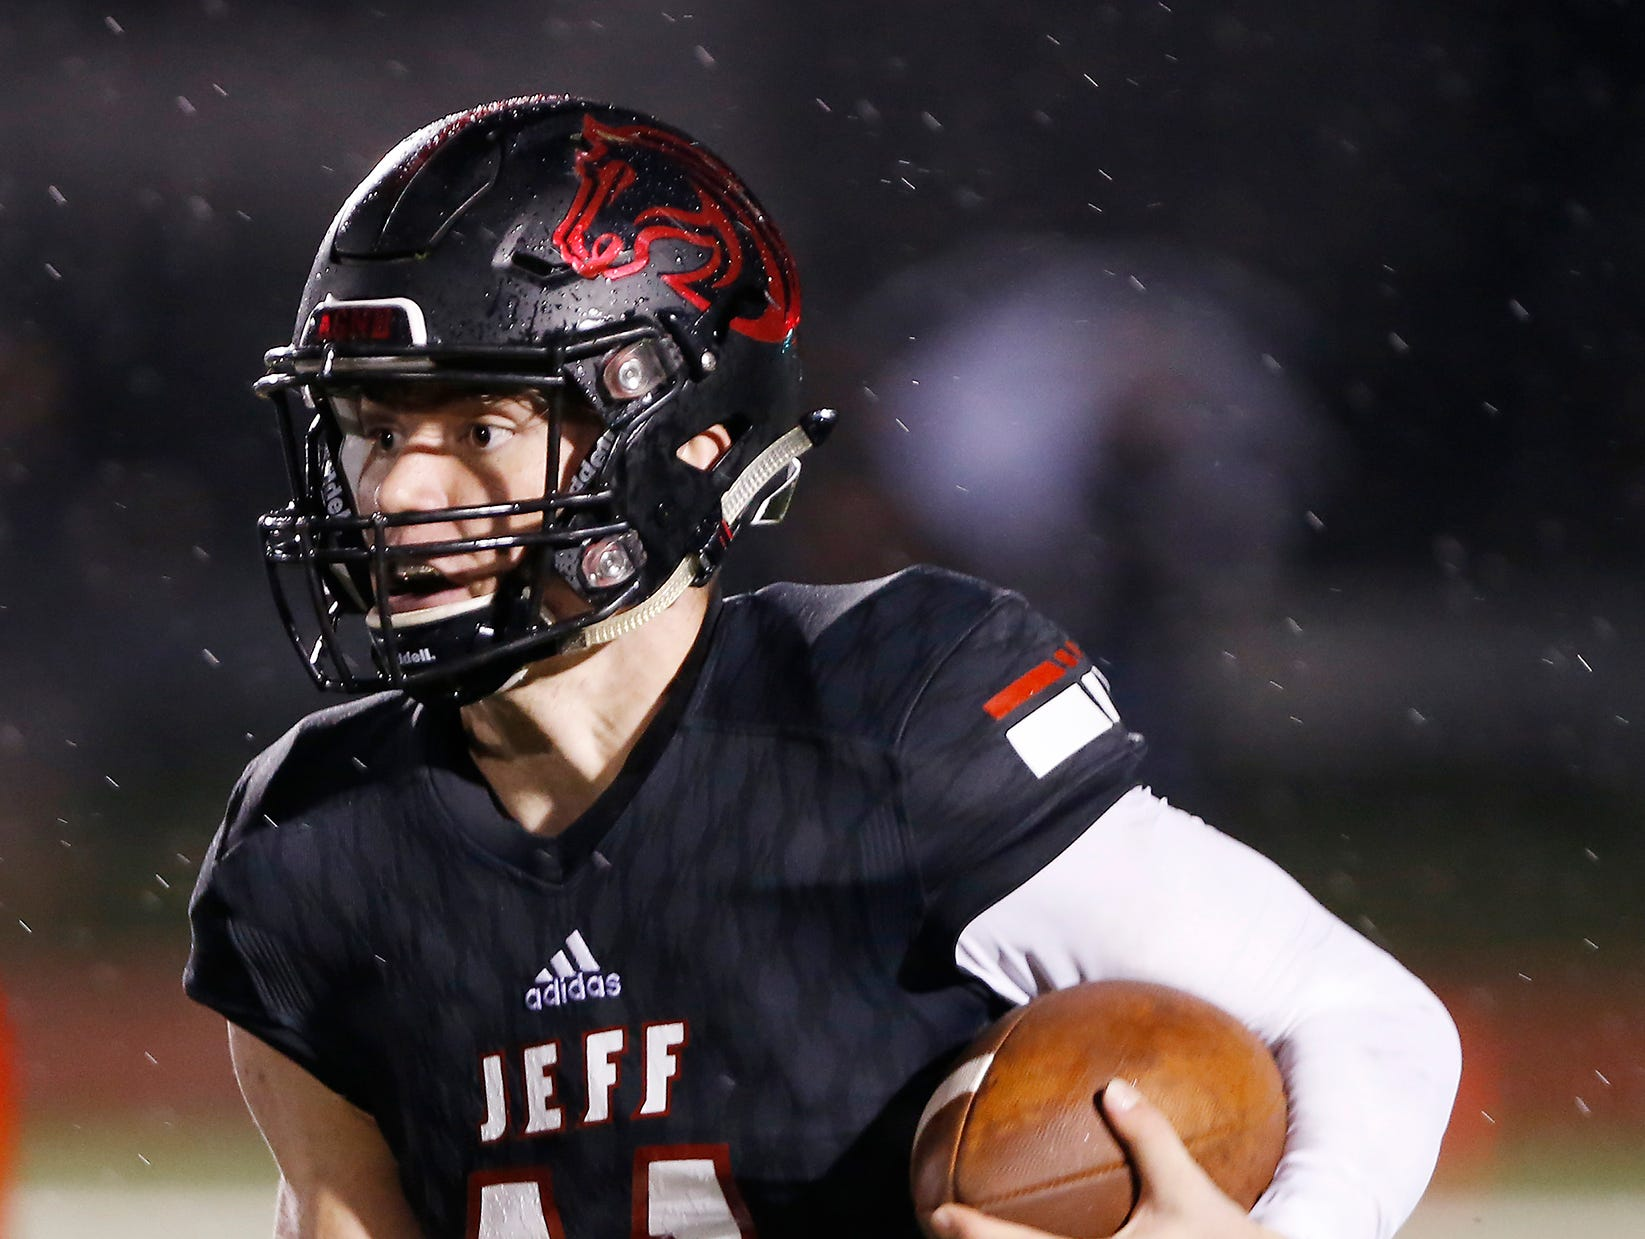 Lafayette Jeff quarterback Maximus Grimes with a carry against Harrison in the third quarter Friday, September 7, 2018, at Scheumann Stadium. Jeff defeated Harrison 31-14.